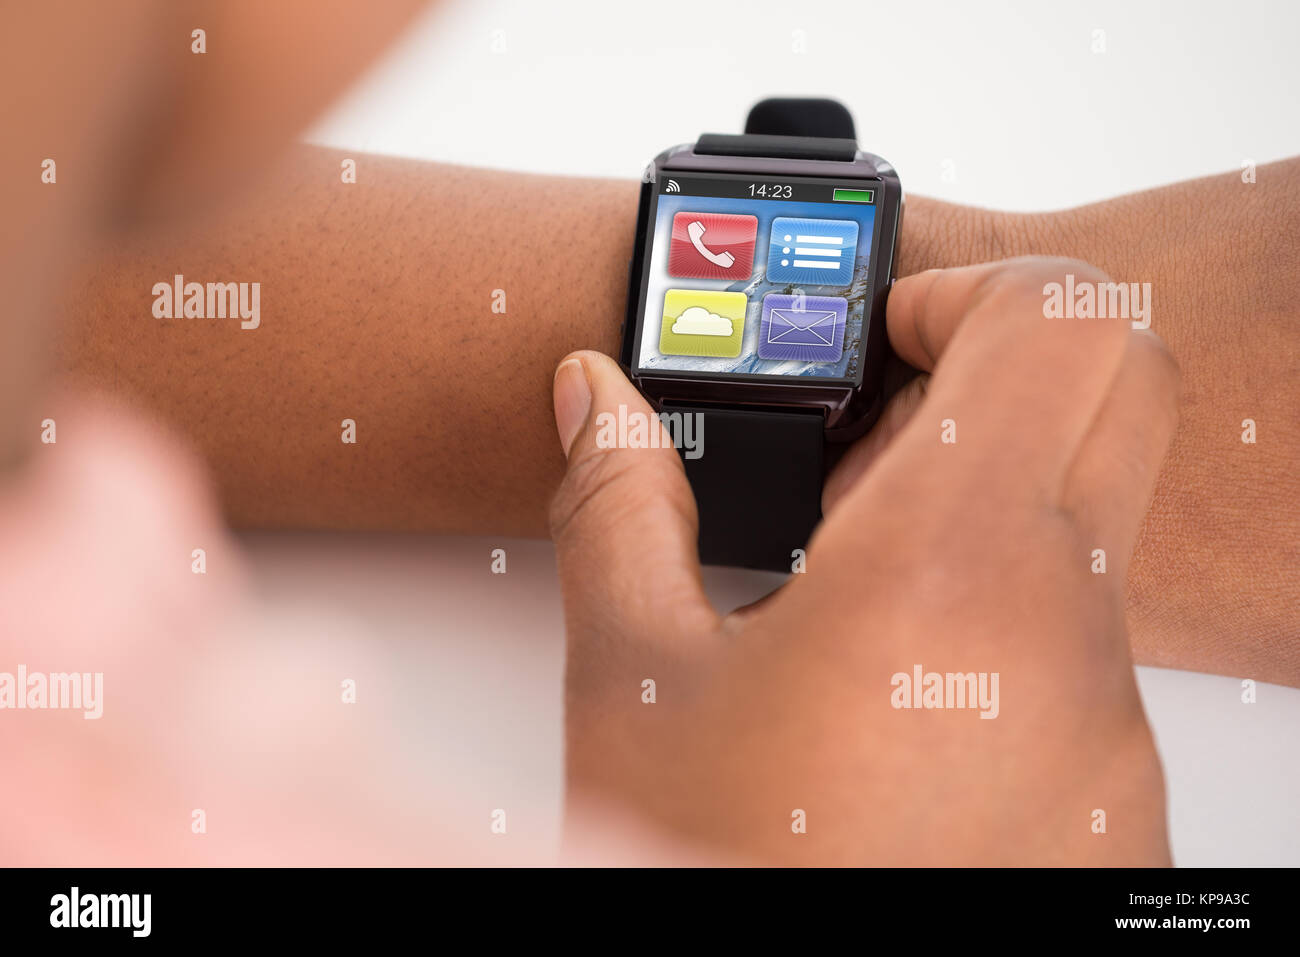 Person's Hand Wearing Smartwatch - Stock Image